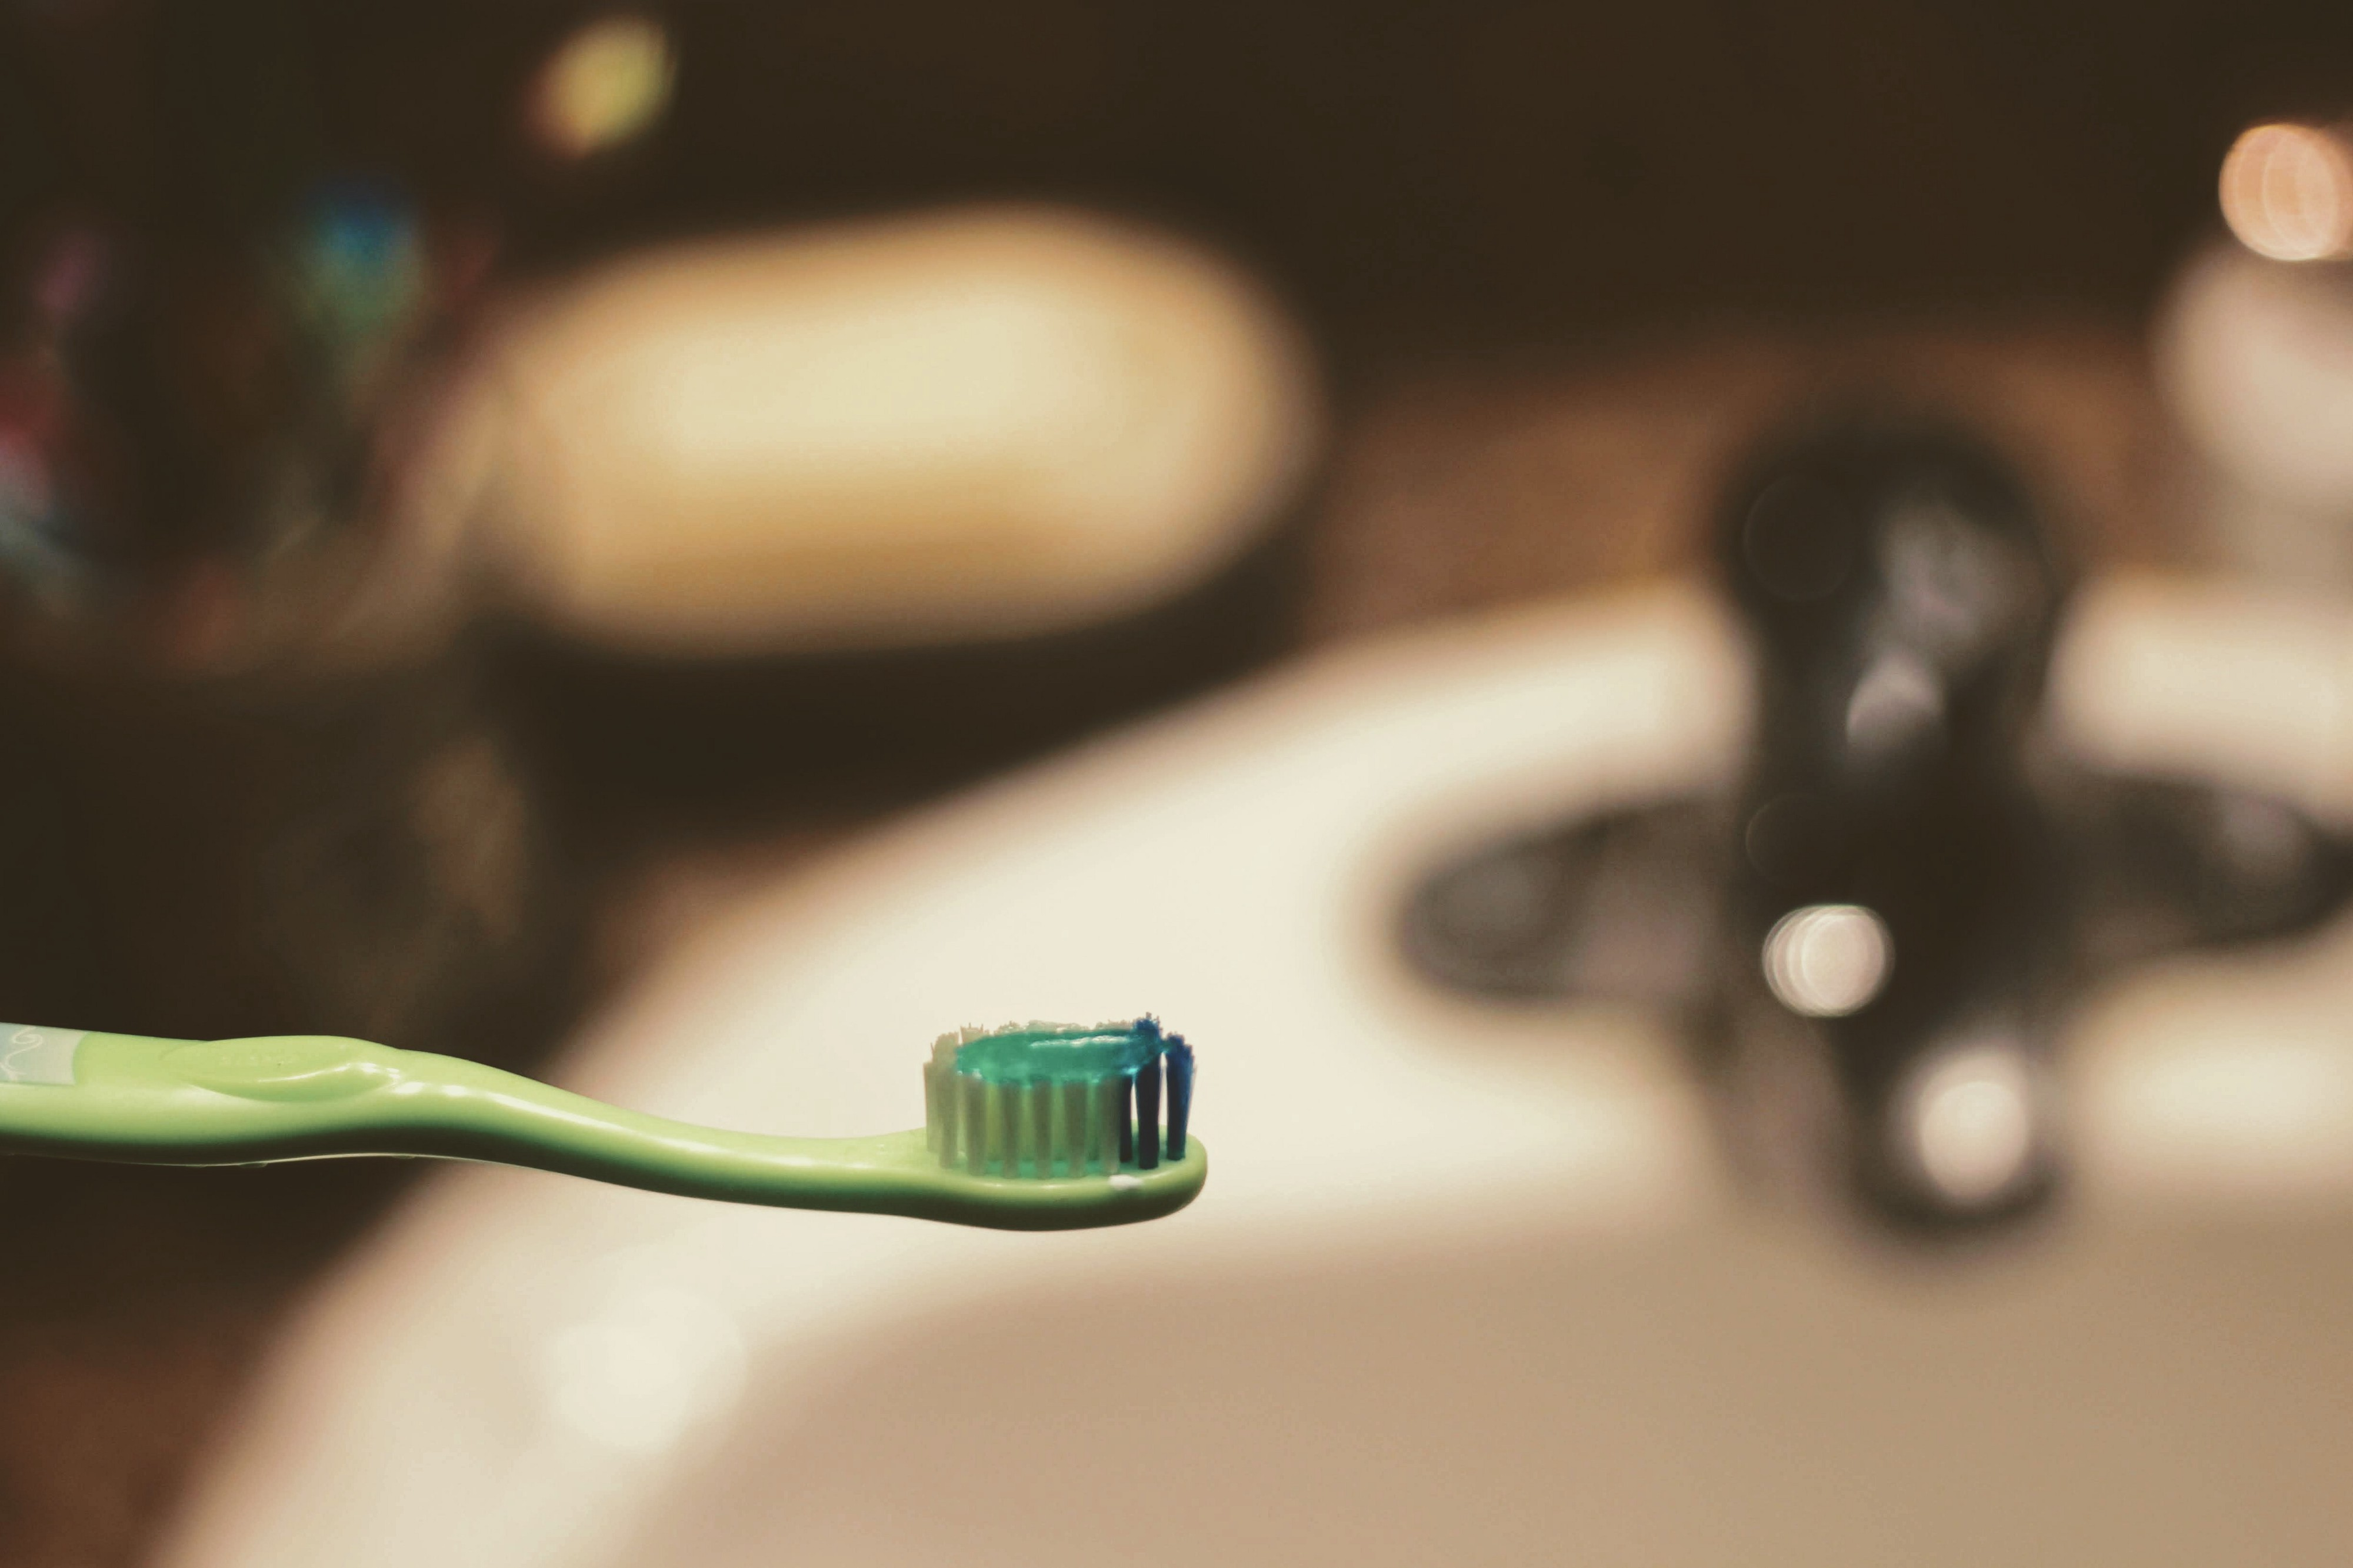 Closeup of a green toothbrush, with an out-of-focus sink in background.